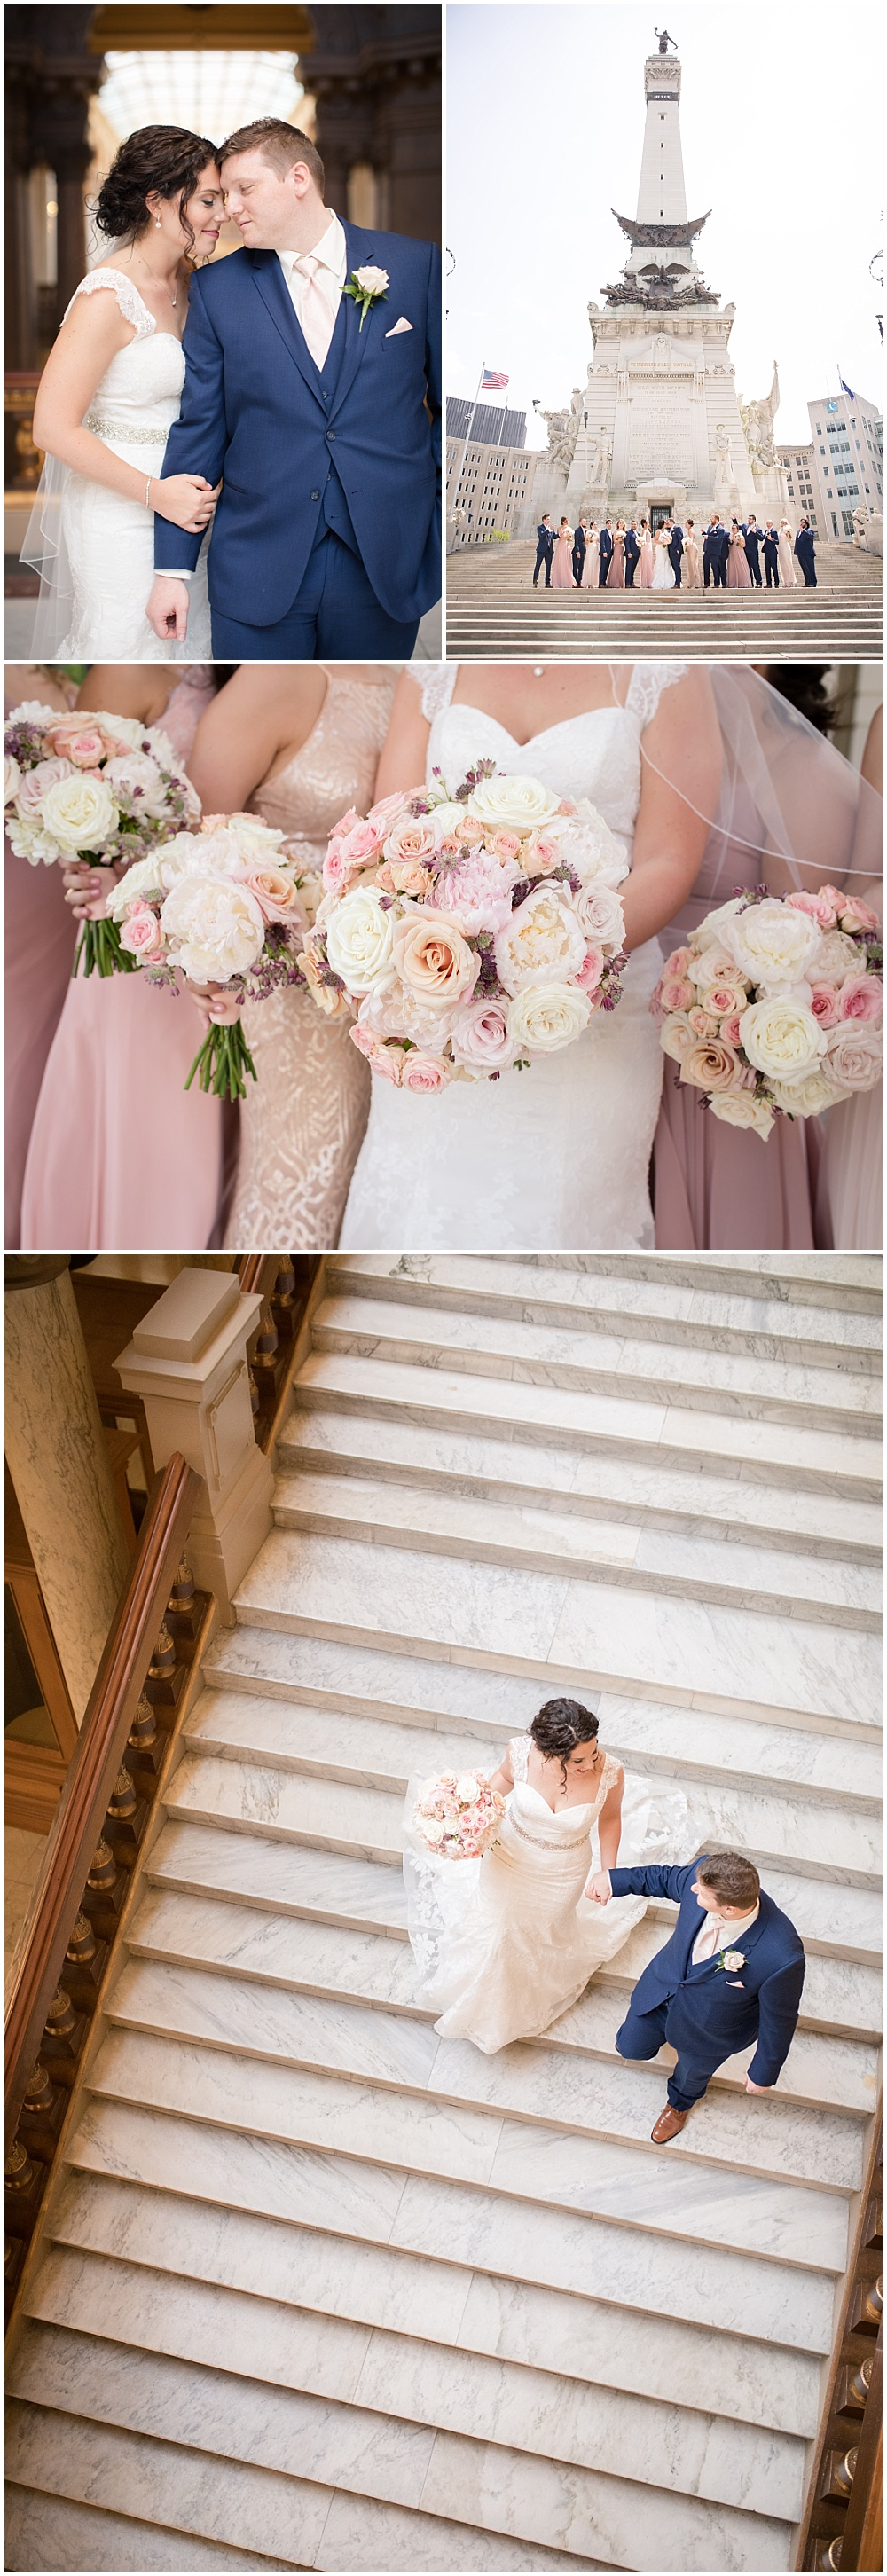 Mix and match blush bridesmaid dresses compliment gorgeous blush and white bridal bouquets.   Spring blush and gold downtown Indianapolis Central Library wedding alongside Evangeline Renee Photography + Jessica Dum Wedding Coordination